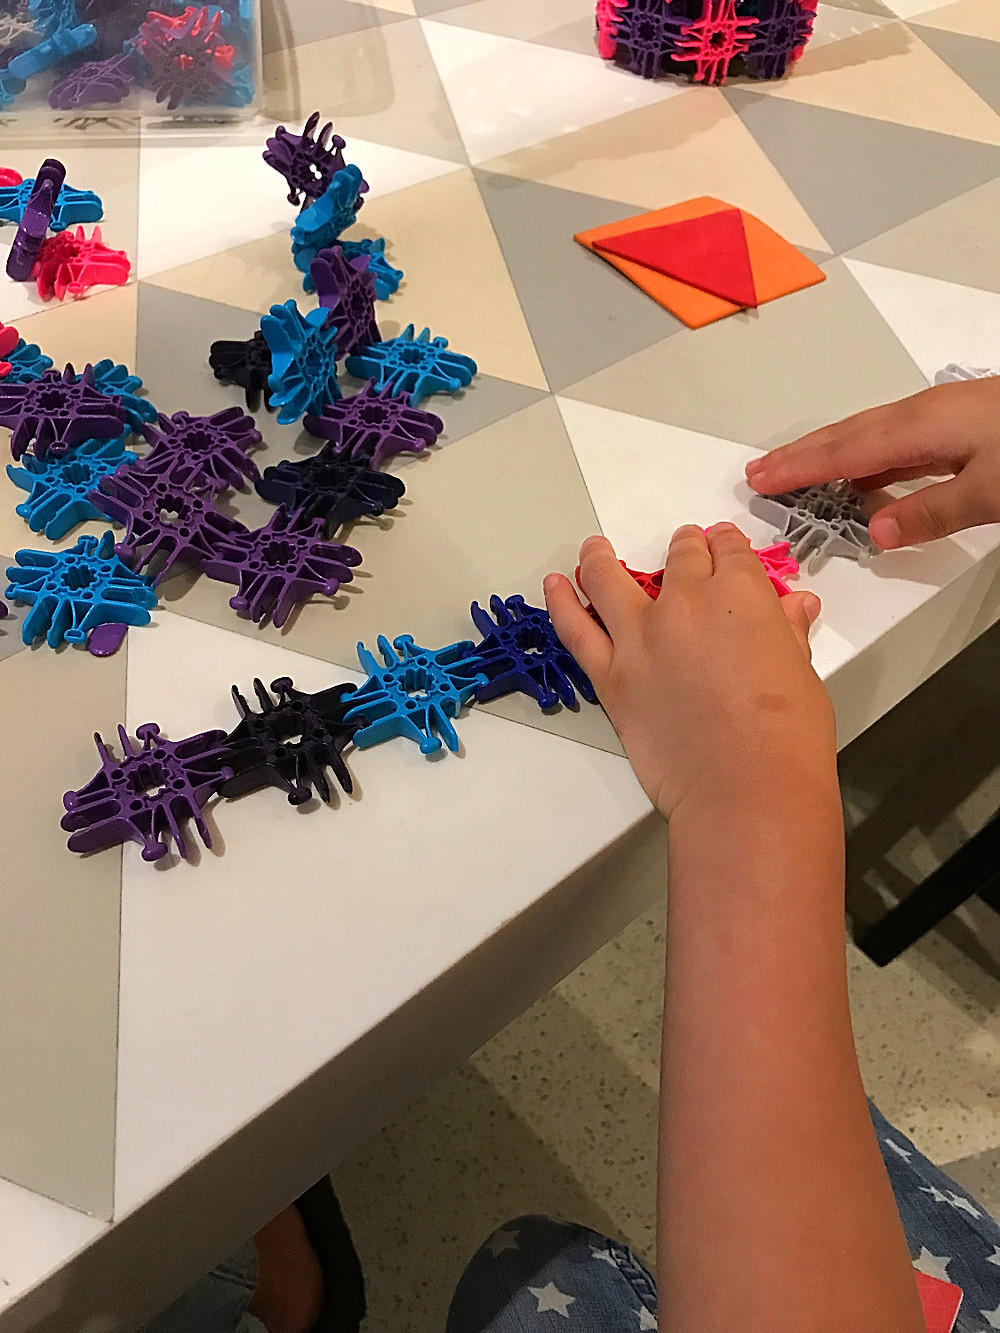 MoMath, The National Museum of Mathematics, children's museum, STEM fo kids, STEAM for kids, things to do this summer, nyc kids, nyc summer, curious g and me